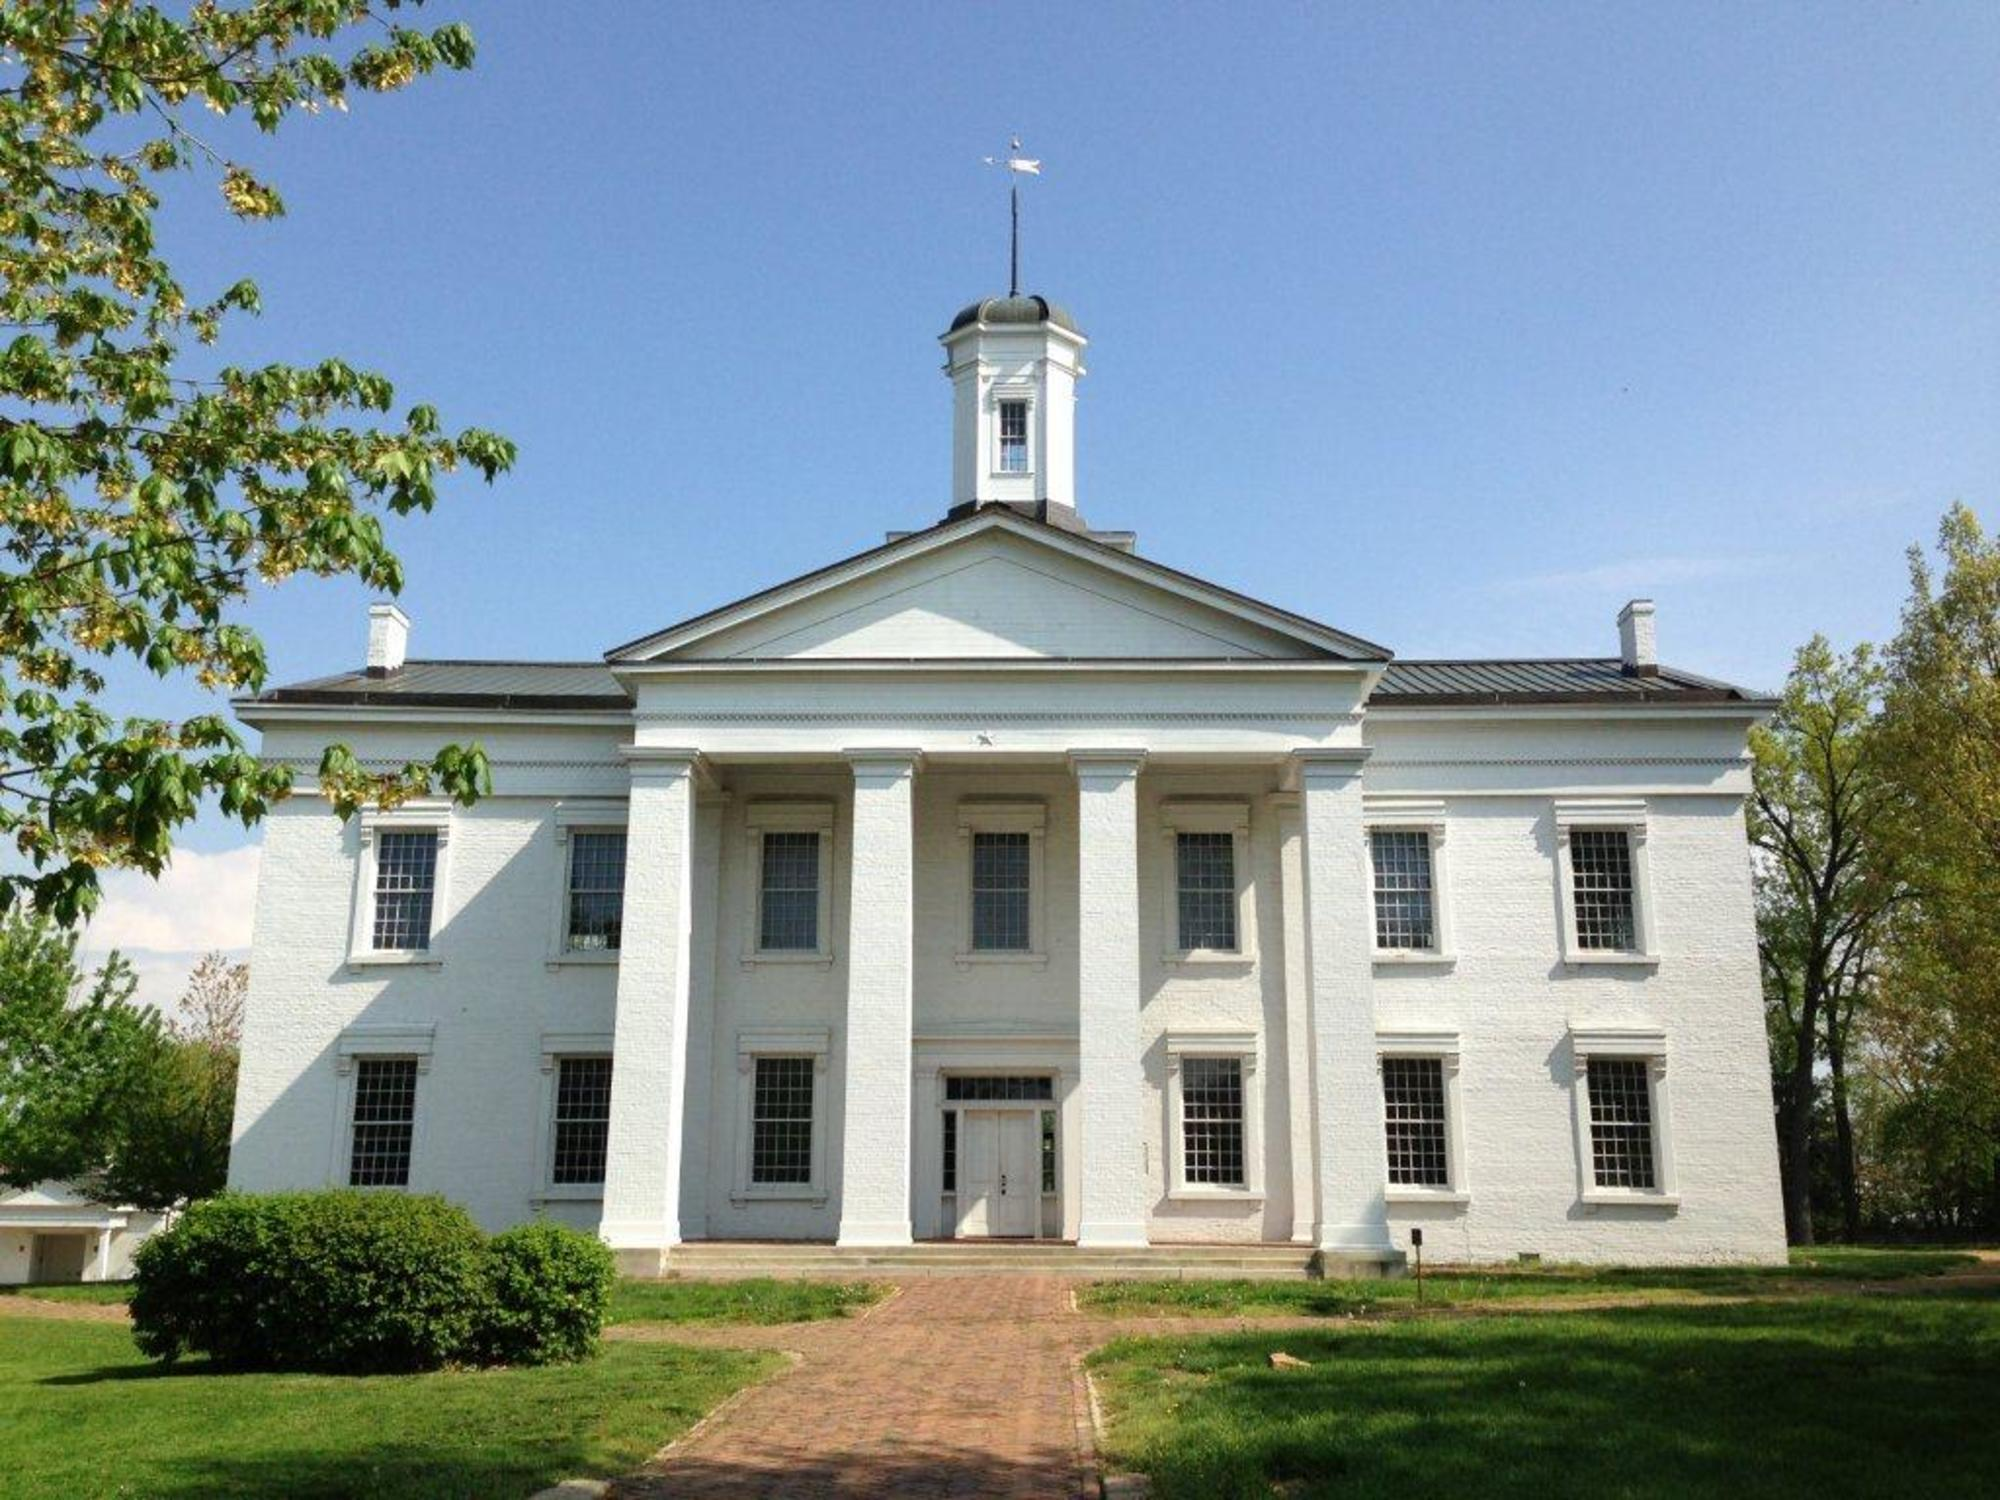 Exterior view of the first State House in Vandalia